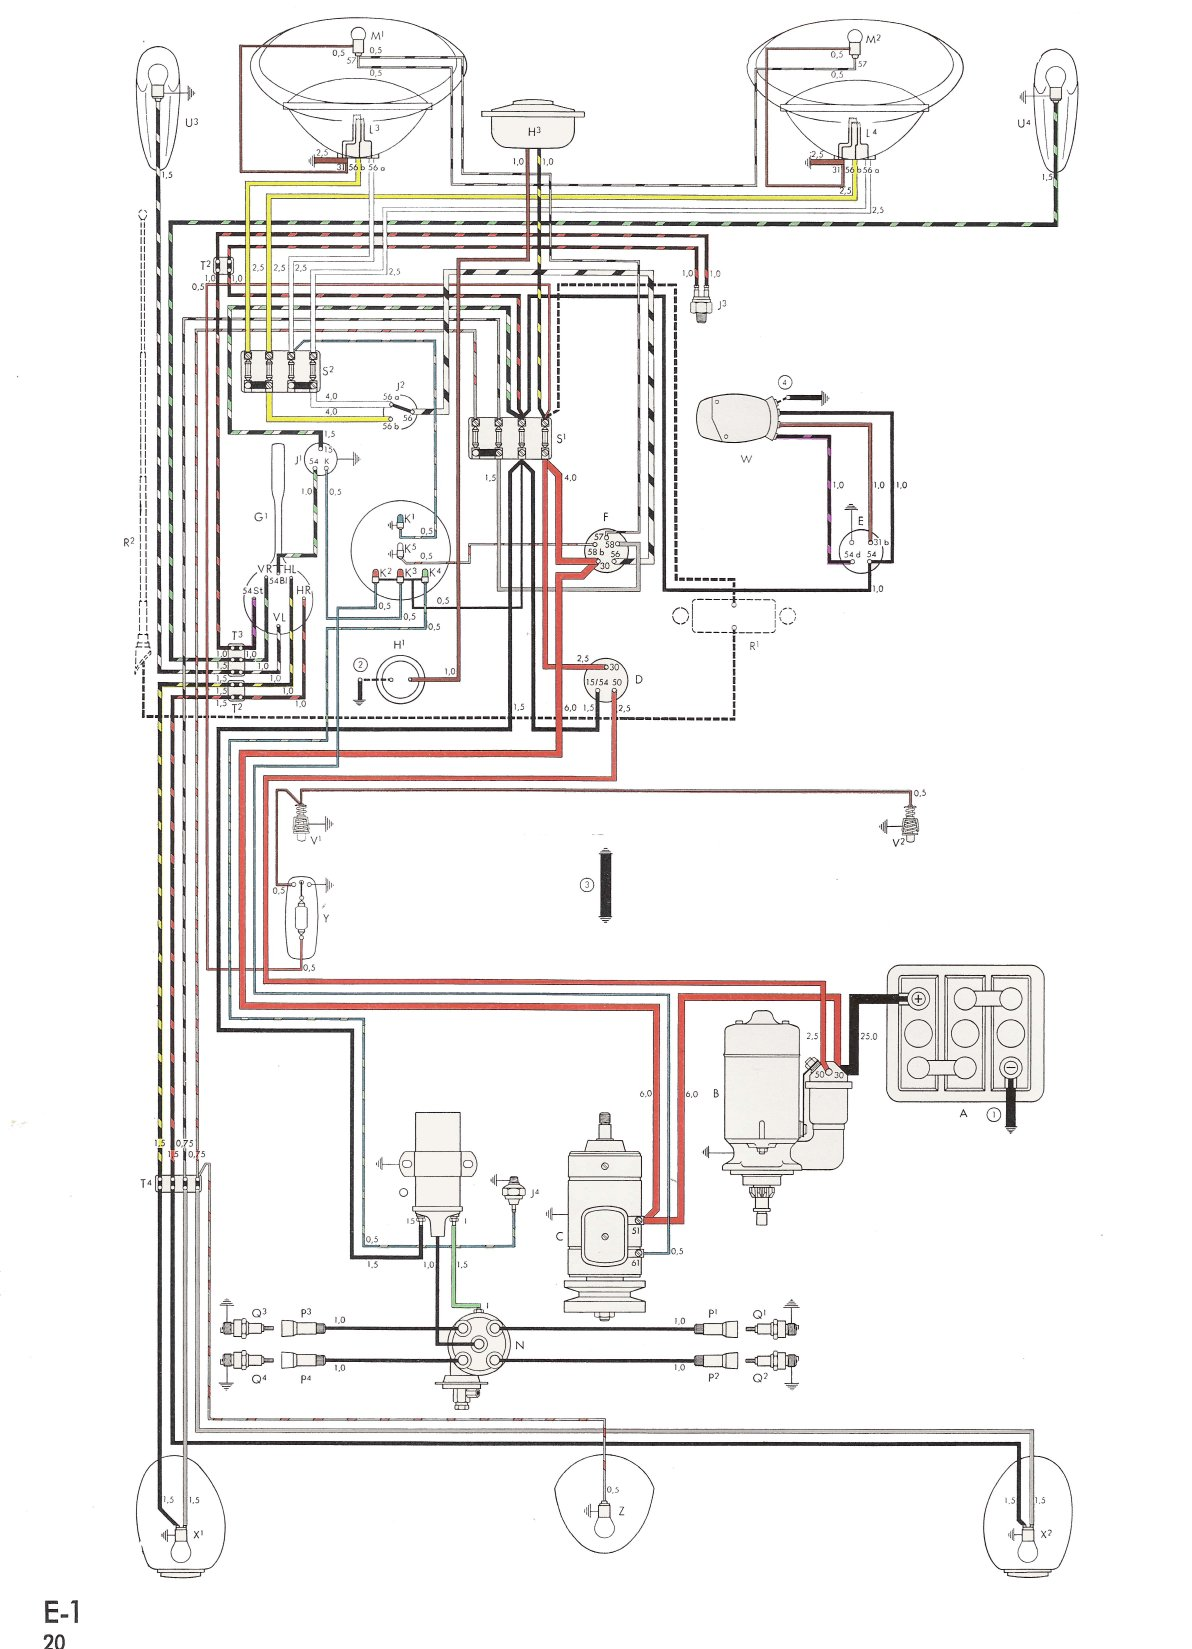 74 vw beetle wiring diagram online wiring diagram VW Beetle Generator Wiring Diagram thesamba com type 1 wiring diagrams 74 vw bug wiring diagram 74 vw beetle wiring diagram